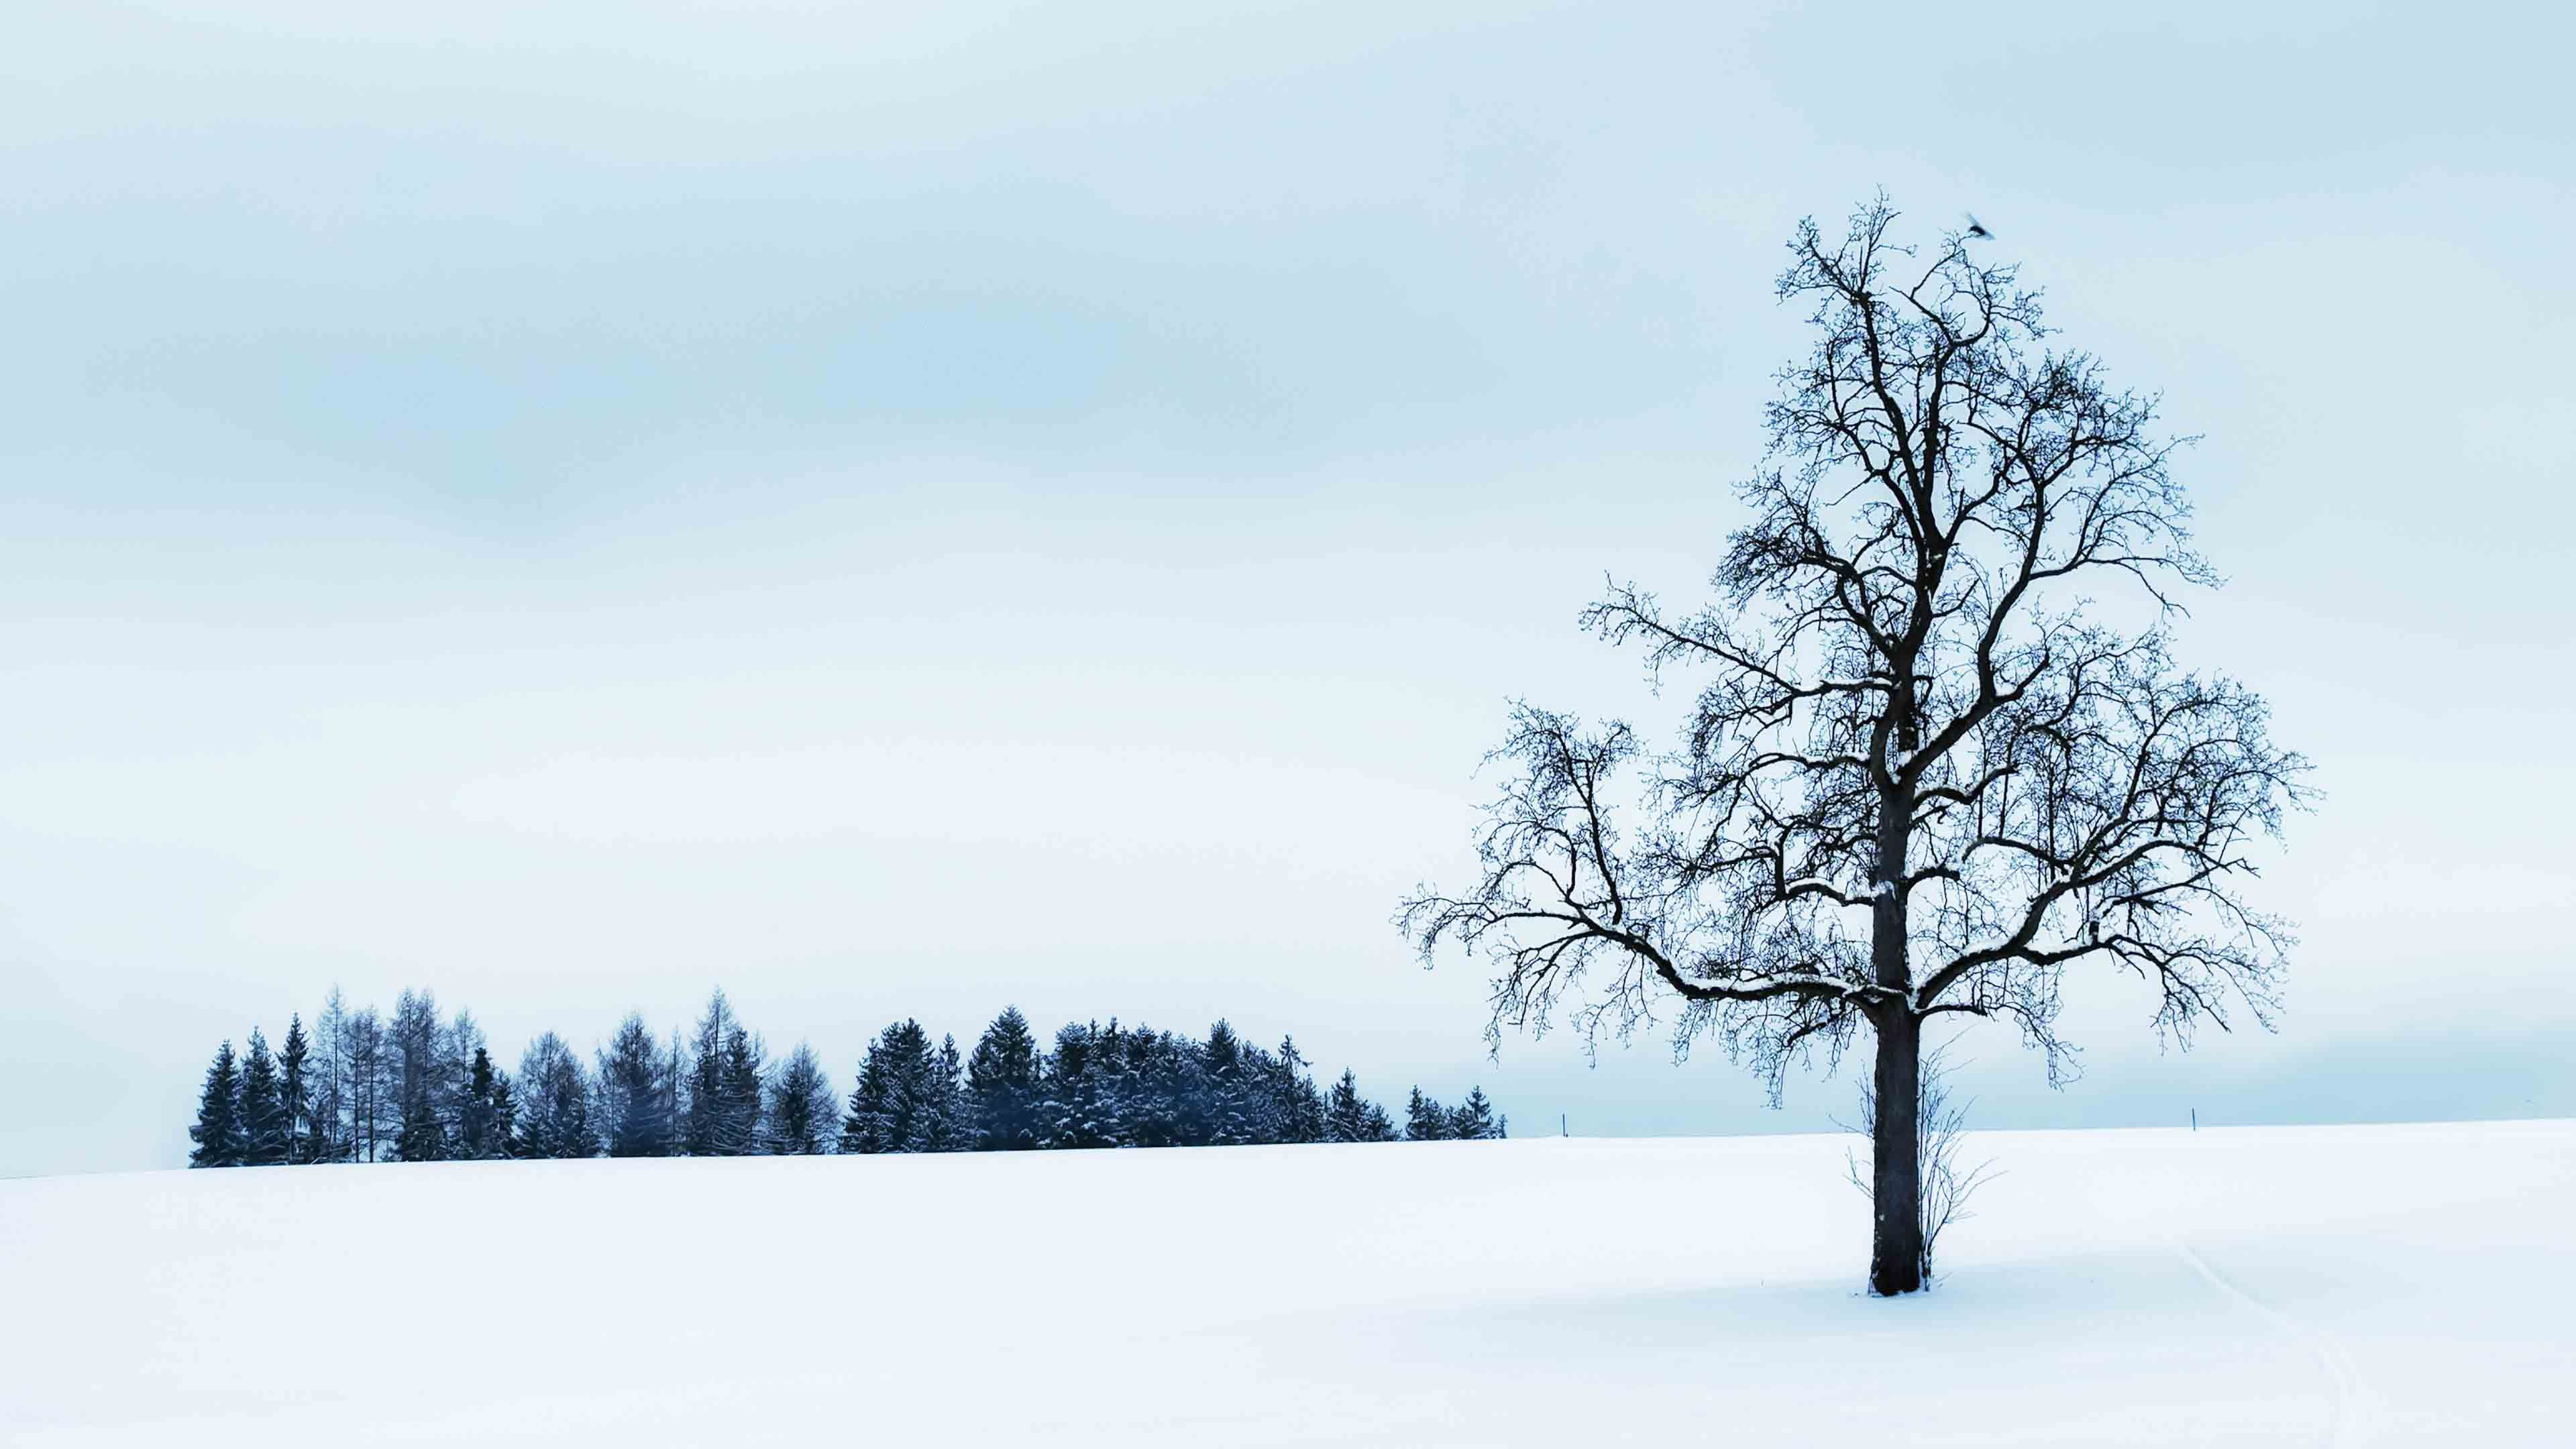 Wallpaper Snow Stock Photography Free Wallpaper Pc Wallpaper Find the perfect background image, updated daily! pinterest